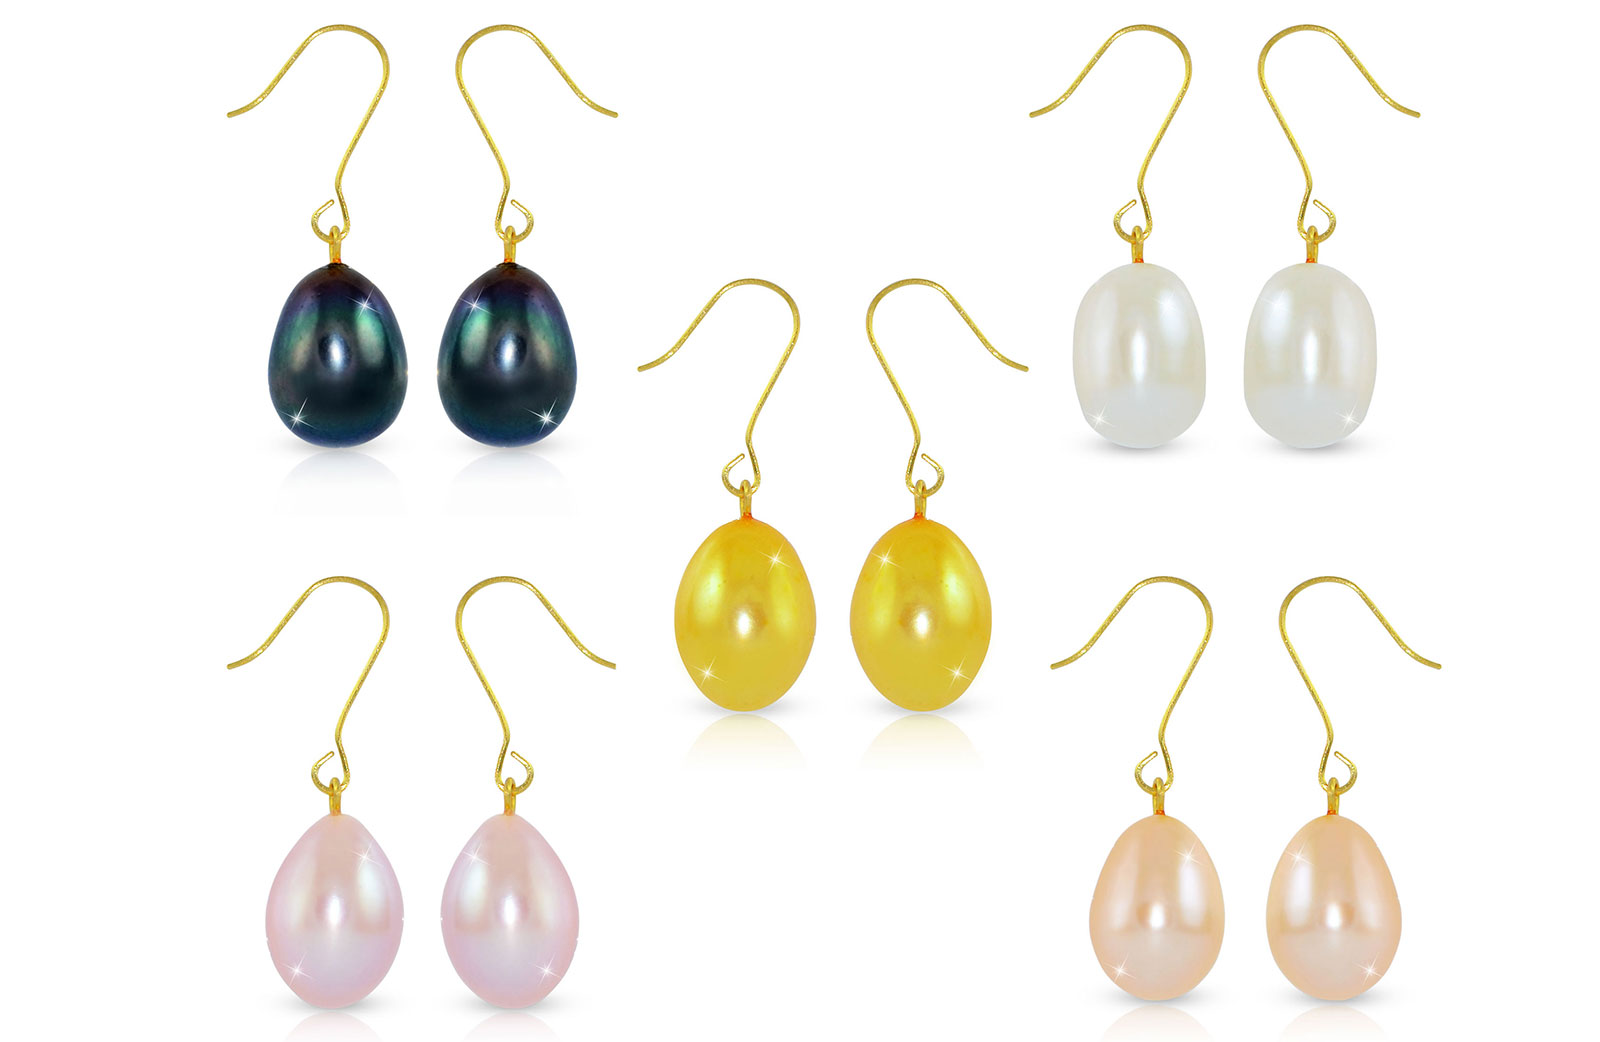 Vera Perla 18K Gold 5 Pairs Multicolor Big Pearls Earrings